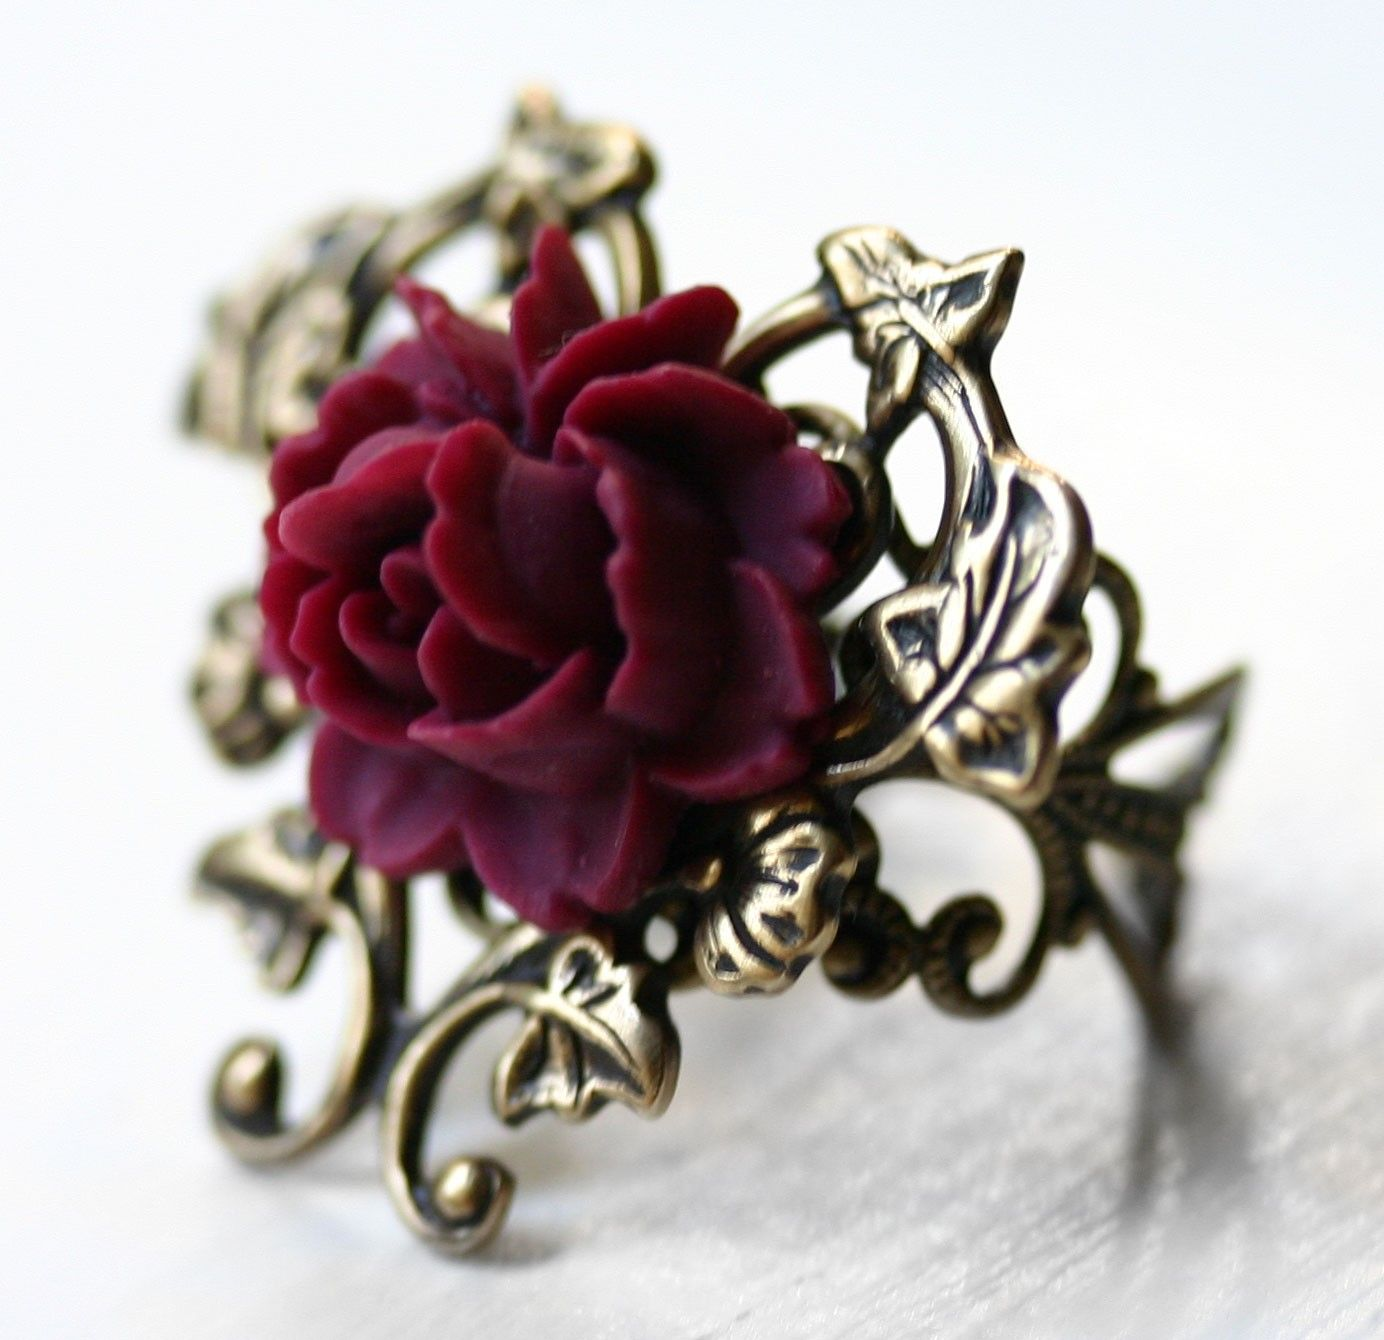 Victorian Blooming Red Rose Ring in Antique Gold LOVE the ring too